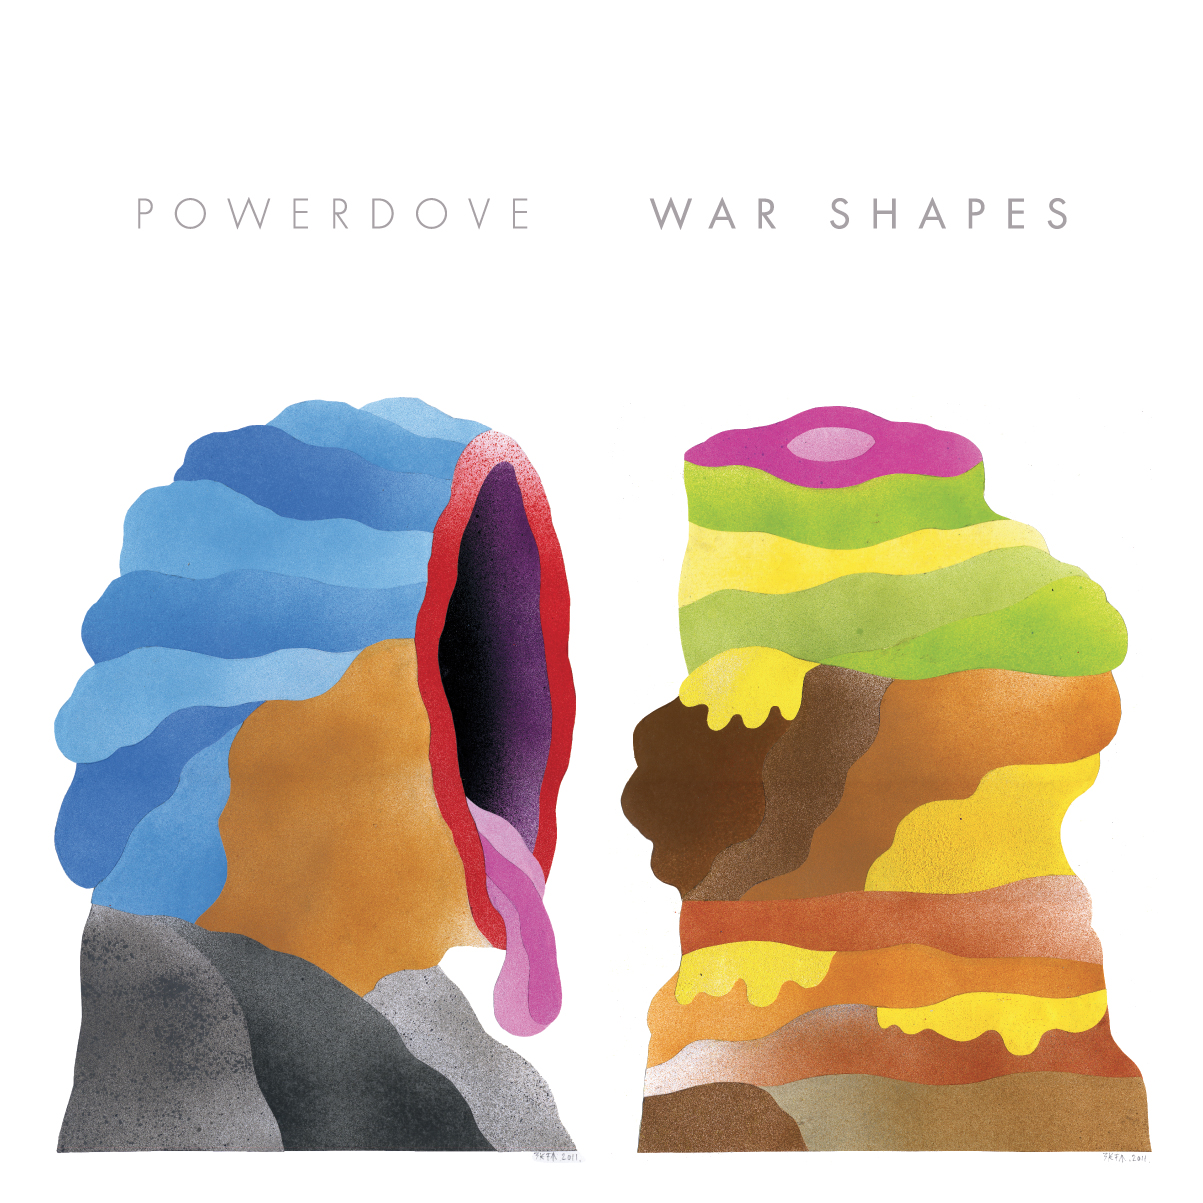 MM020-powerdove-war-shapes